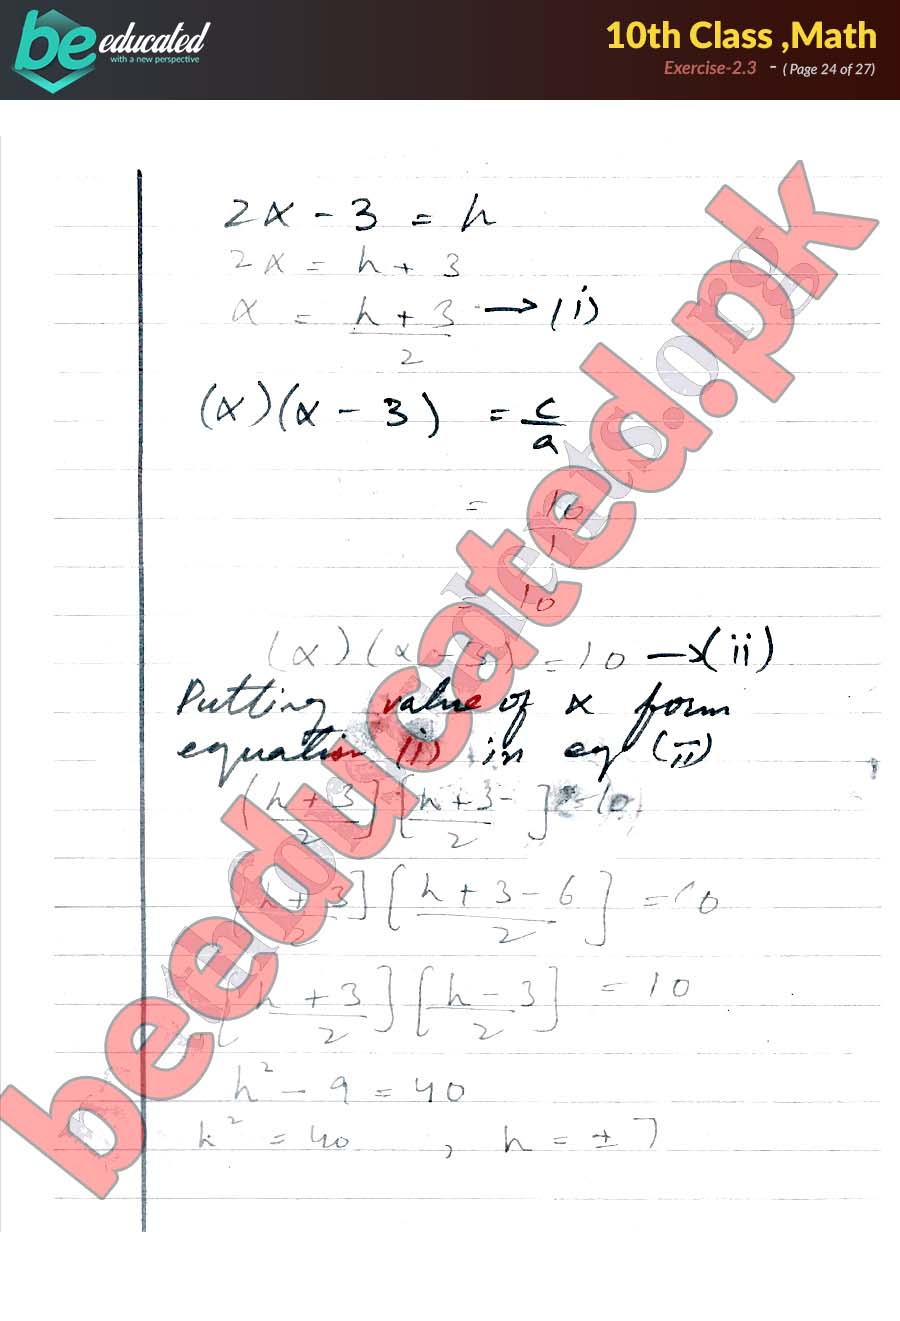 Exercise 2 3 Math 10th Class Notes - Matric Part 2 Notes